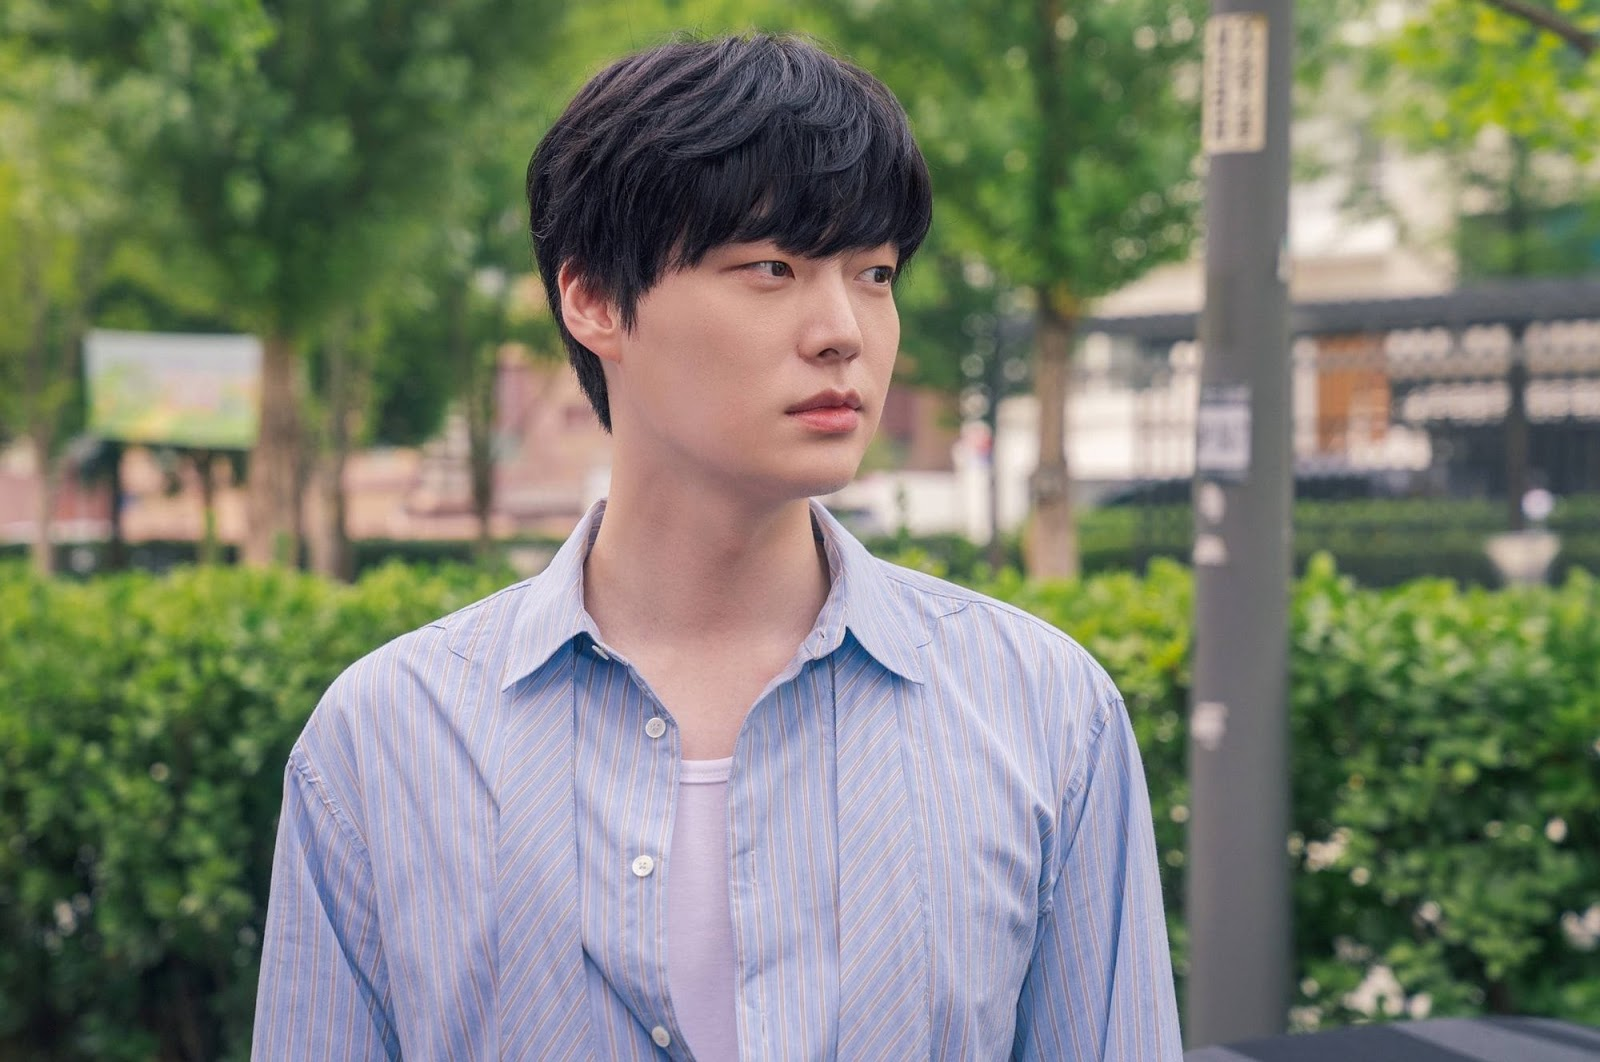 Ahn Jae Hyun Will Appear For The First Time in Public After Divorcing Goo Hye Sun